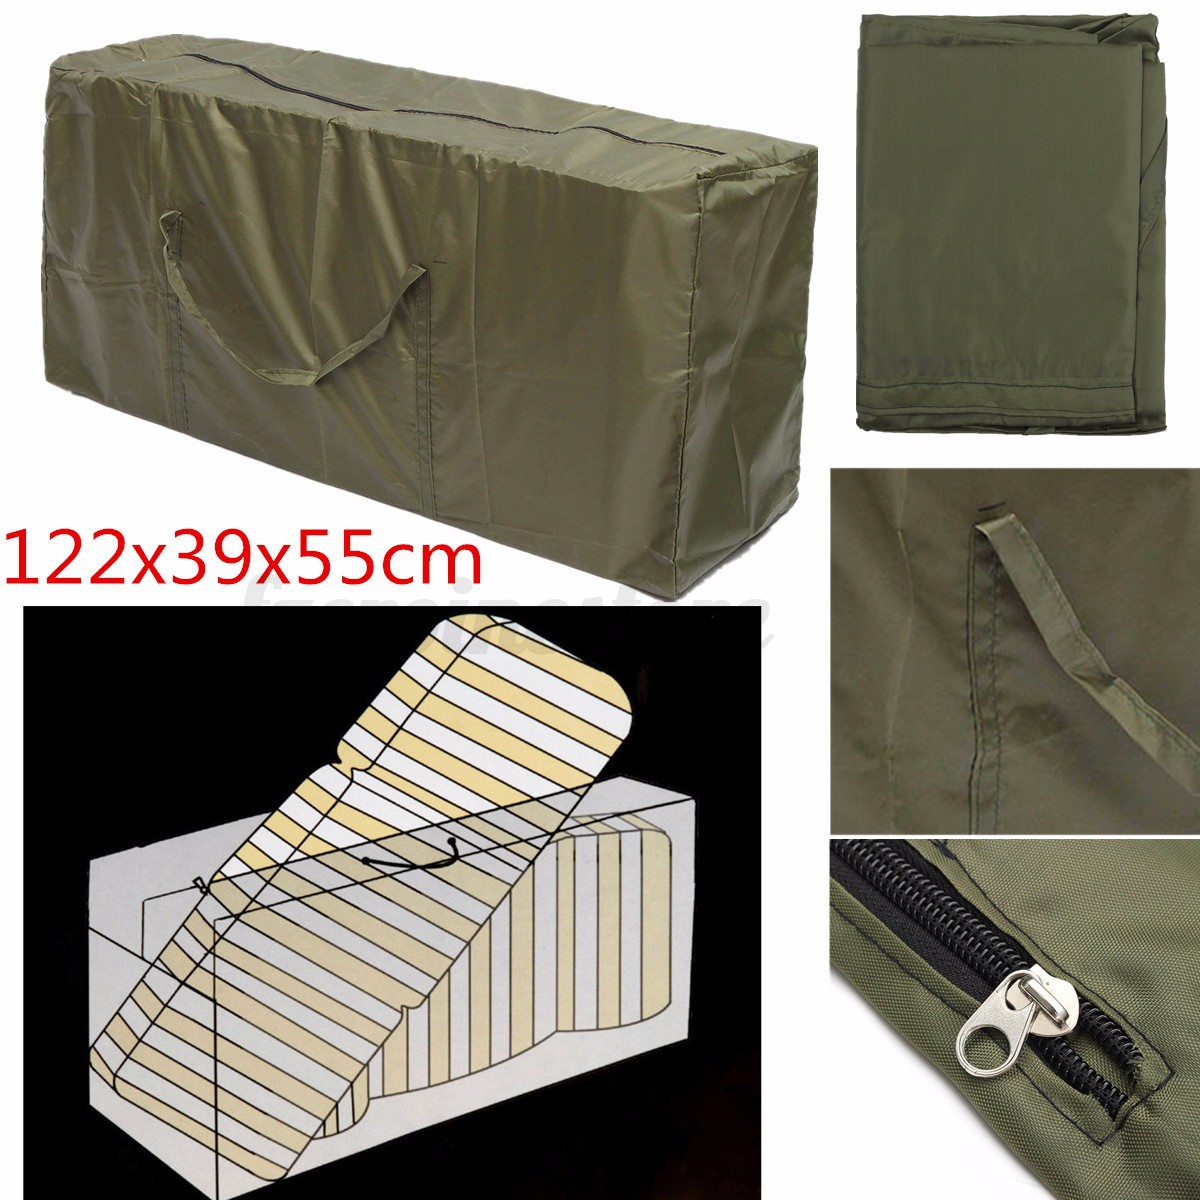 sofa cover storage bag lane alpine leather reclining waterproof furniture for outdoor garden patio bench